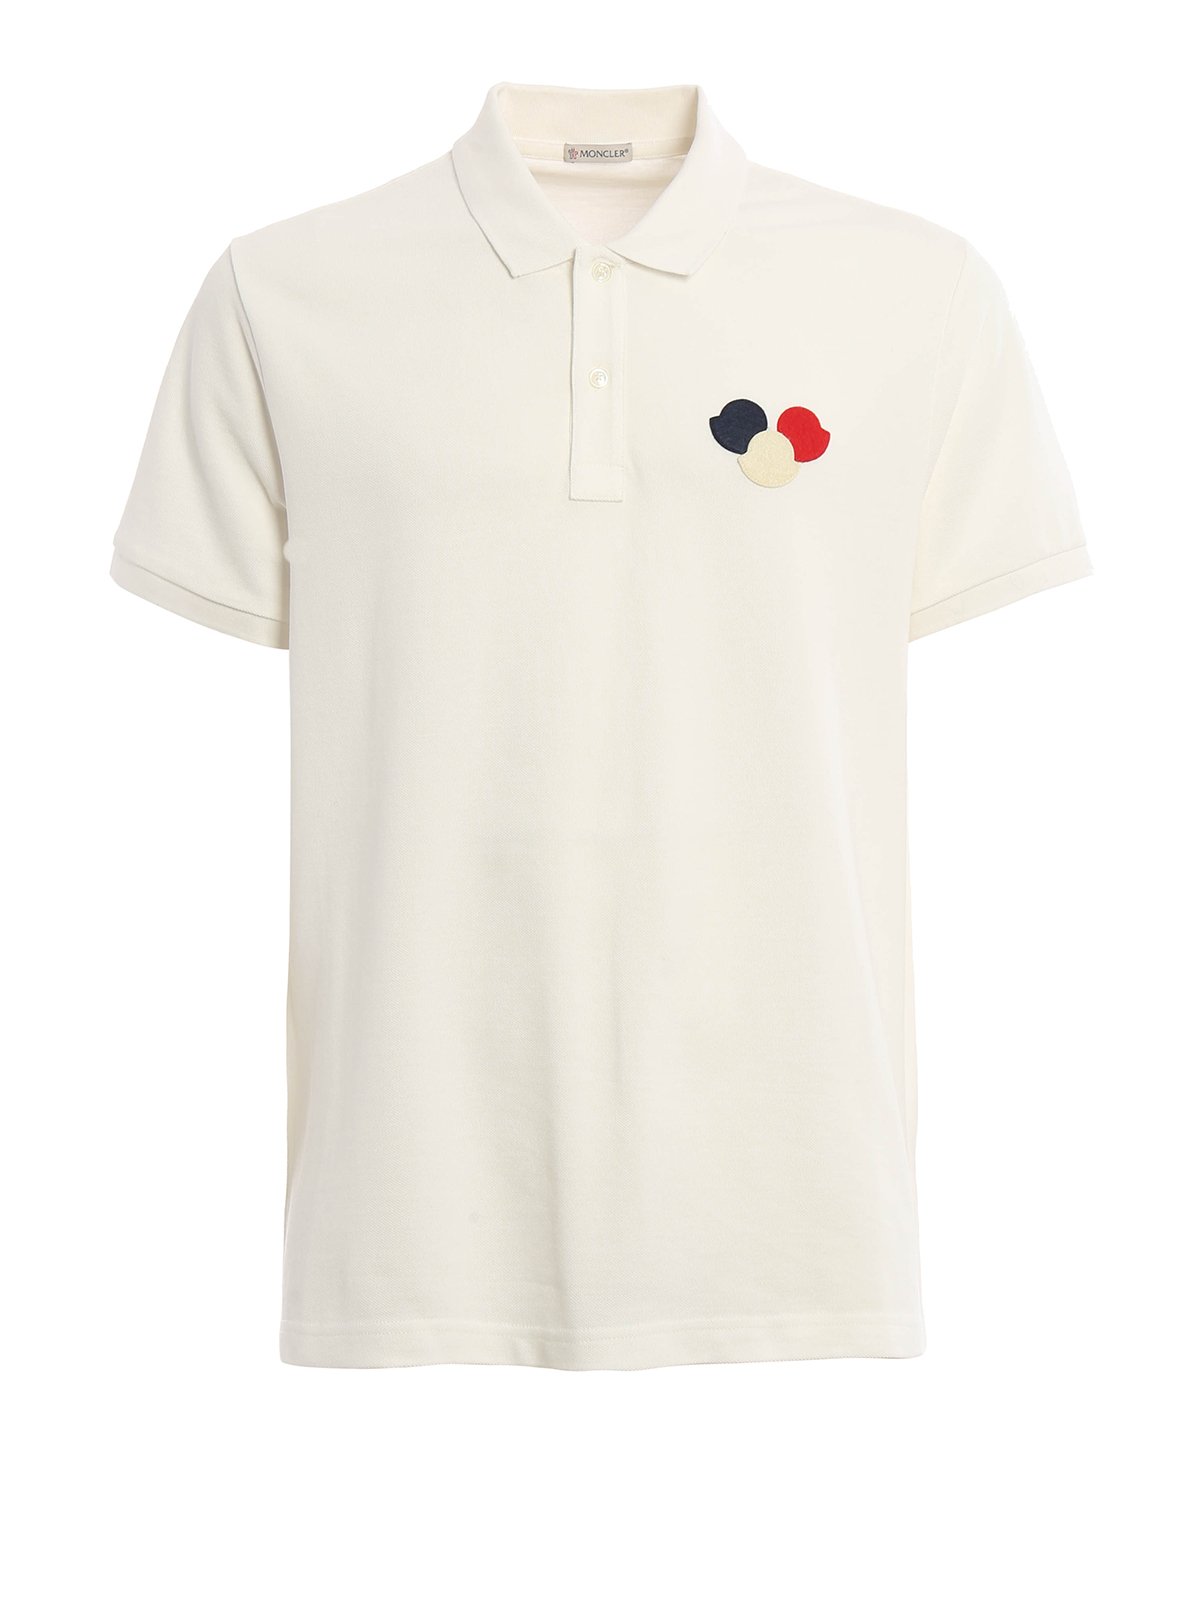 moncler logo patch cotton pique polo shirt polo shirts c1 091 8318800 84556 004. Black Bedroom Furniture Sets. Home Design Ideas